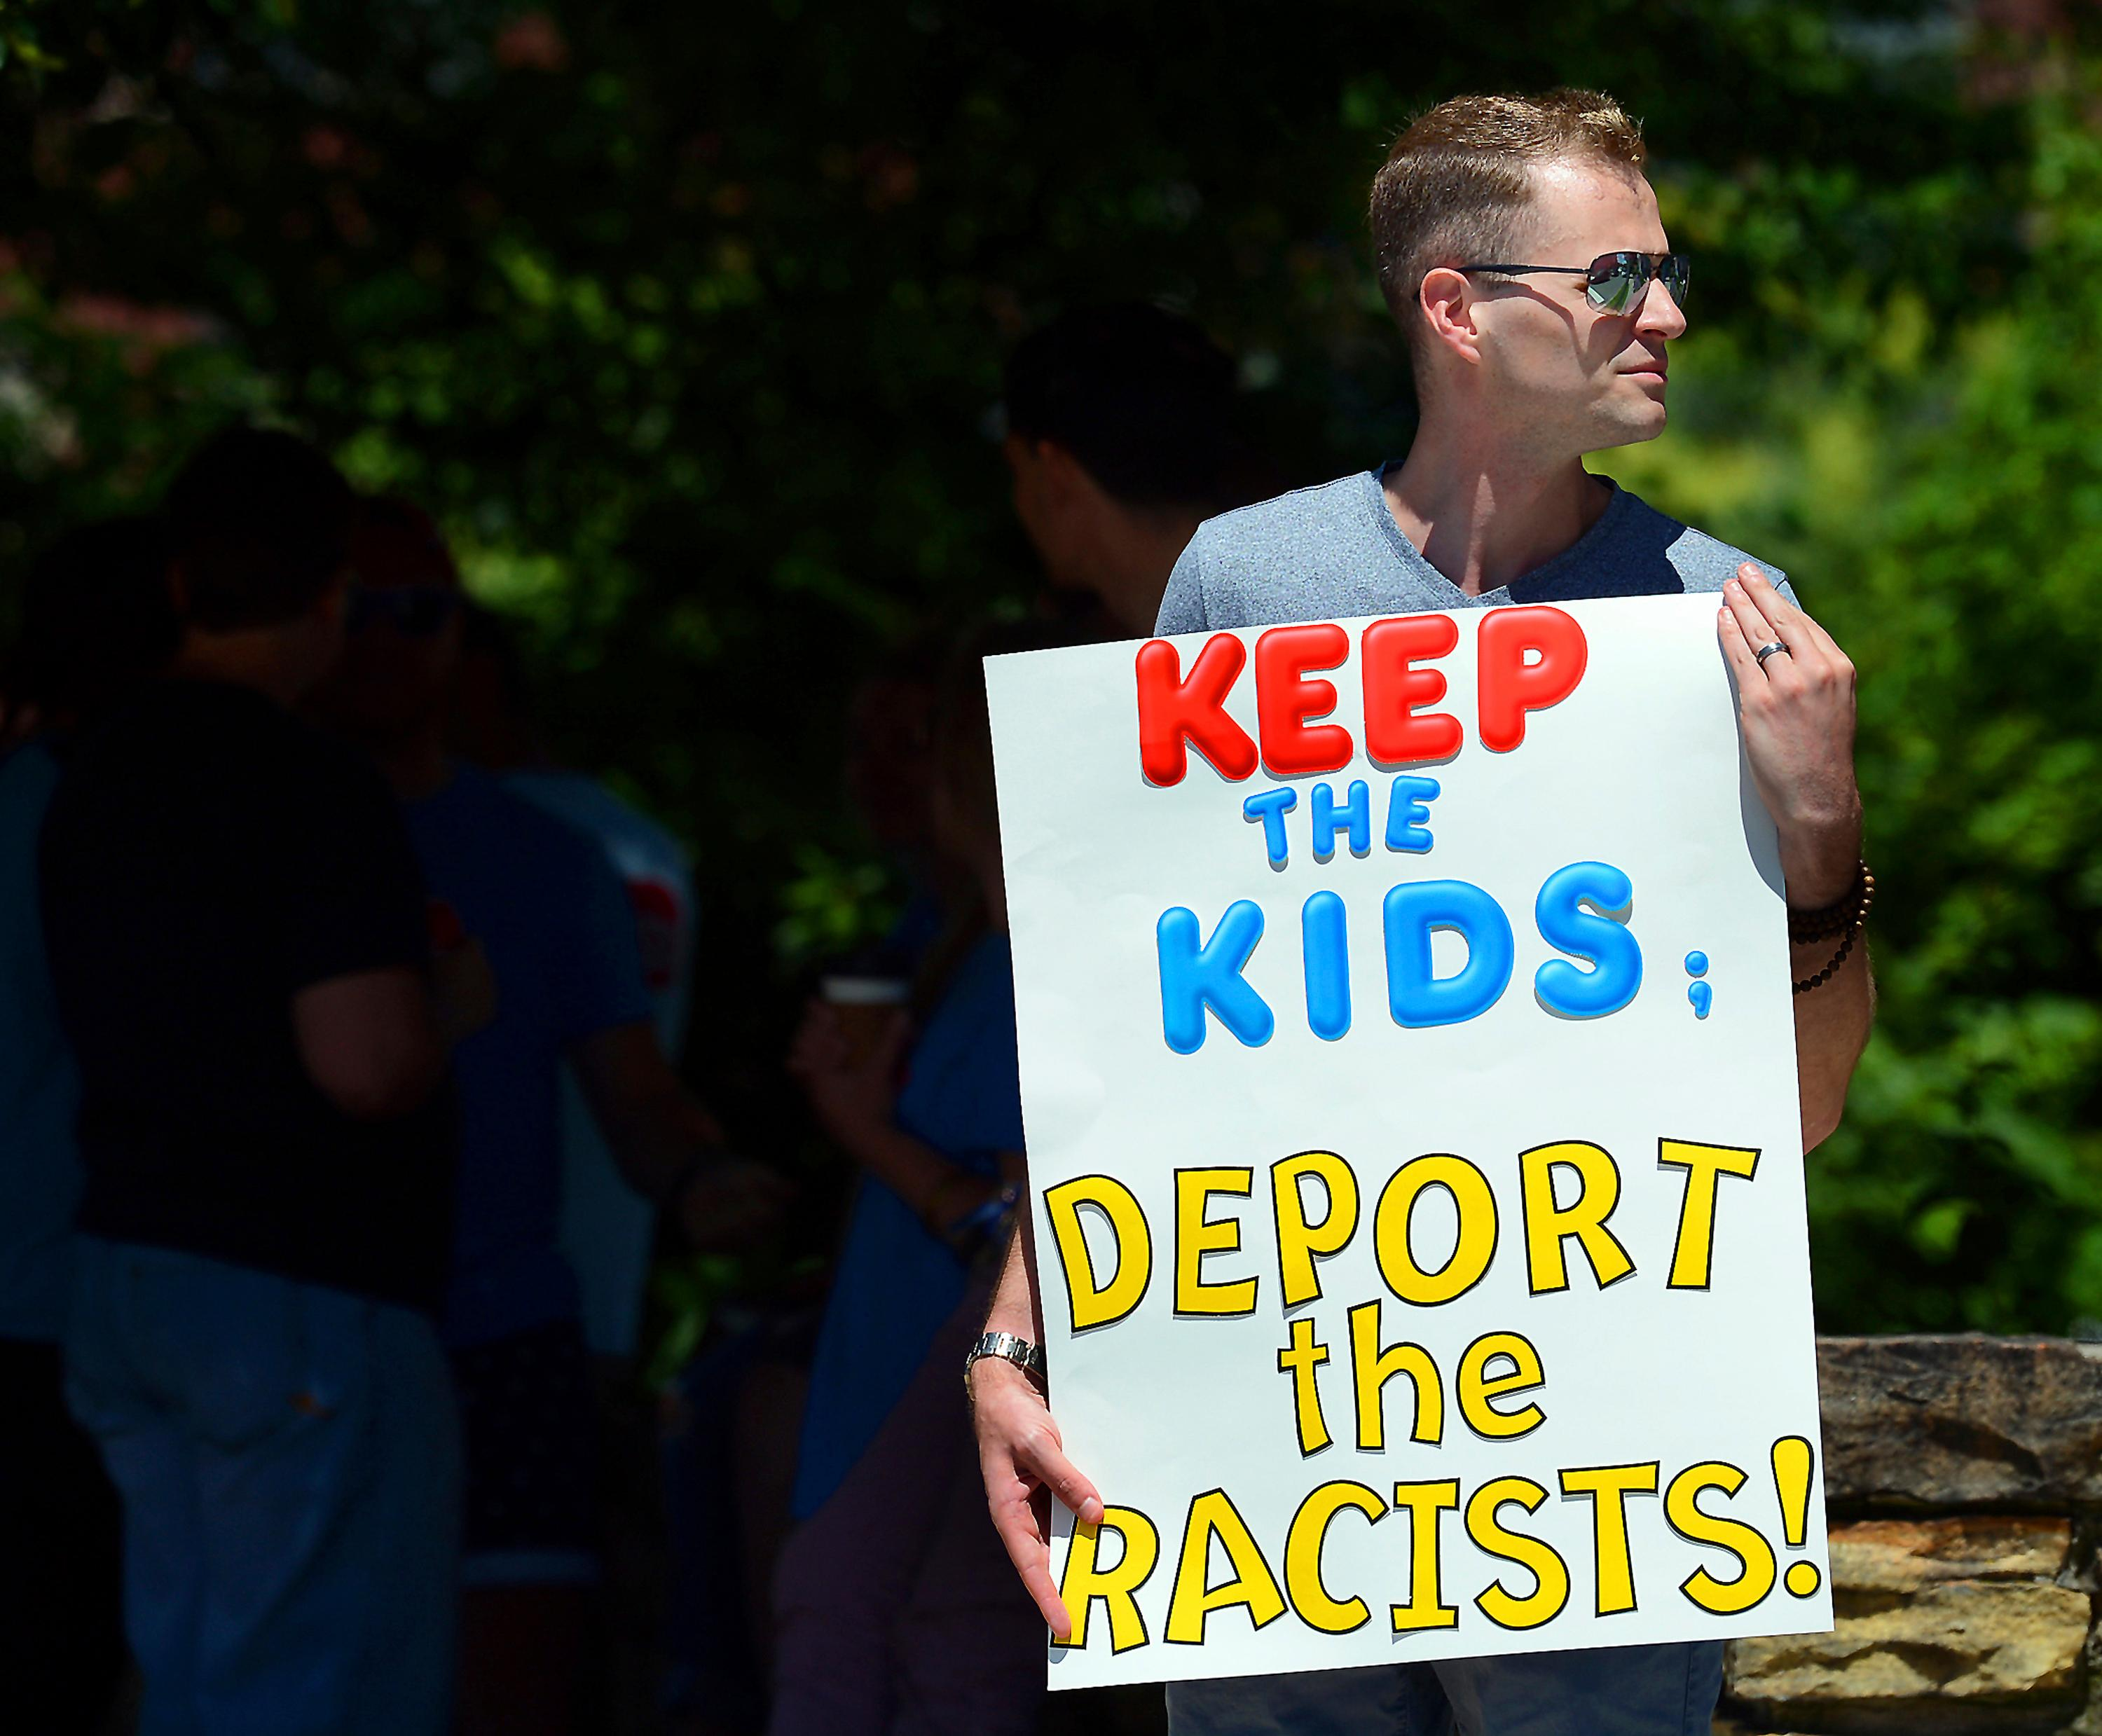 FILE - In this June 15, 2018 file photo, Chris Olson, of Lake Wallenpaupack, Pa., holds a sign outside Lackawanna College where U.S. Attorney Jeff Sessions spoke on immigration policy{ } (Butch Comegys/The Times-Tribune via AP, File)